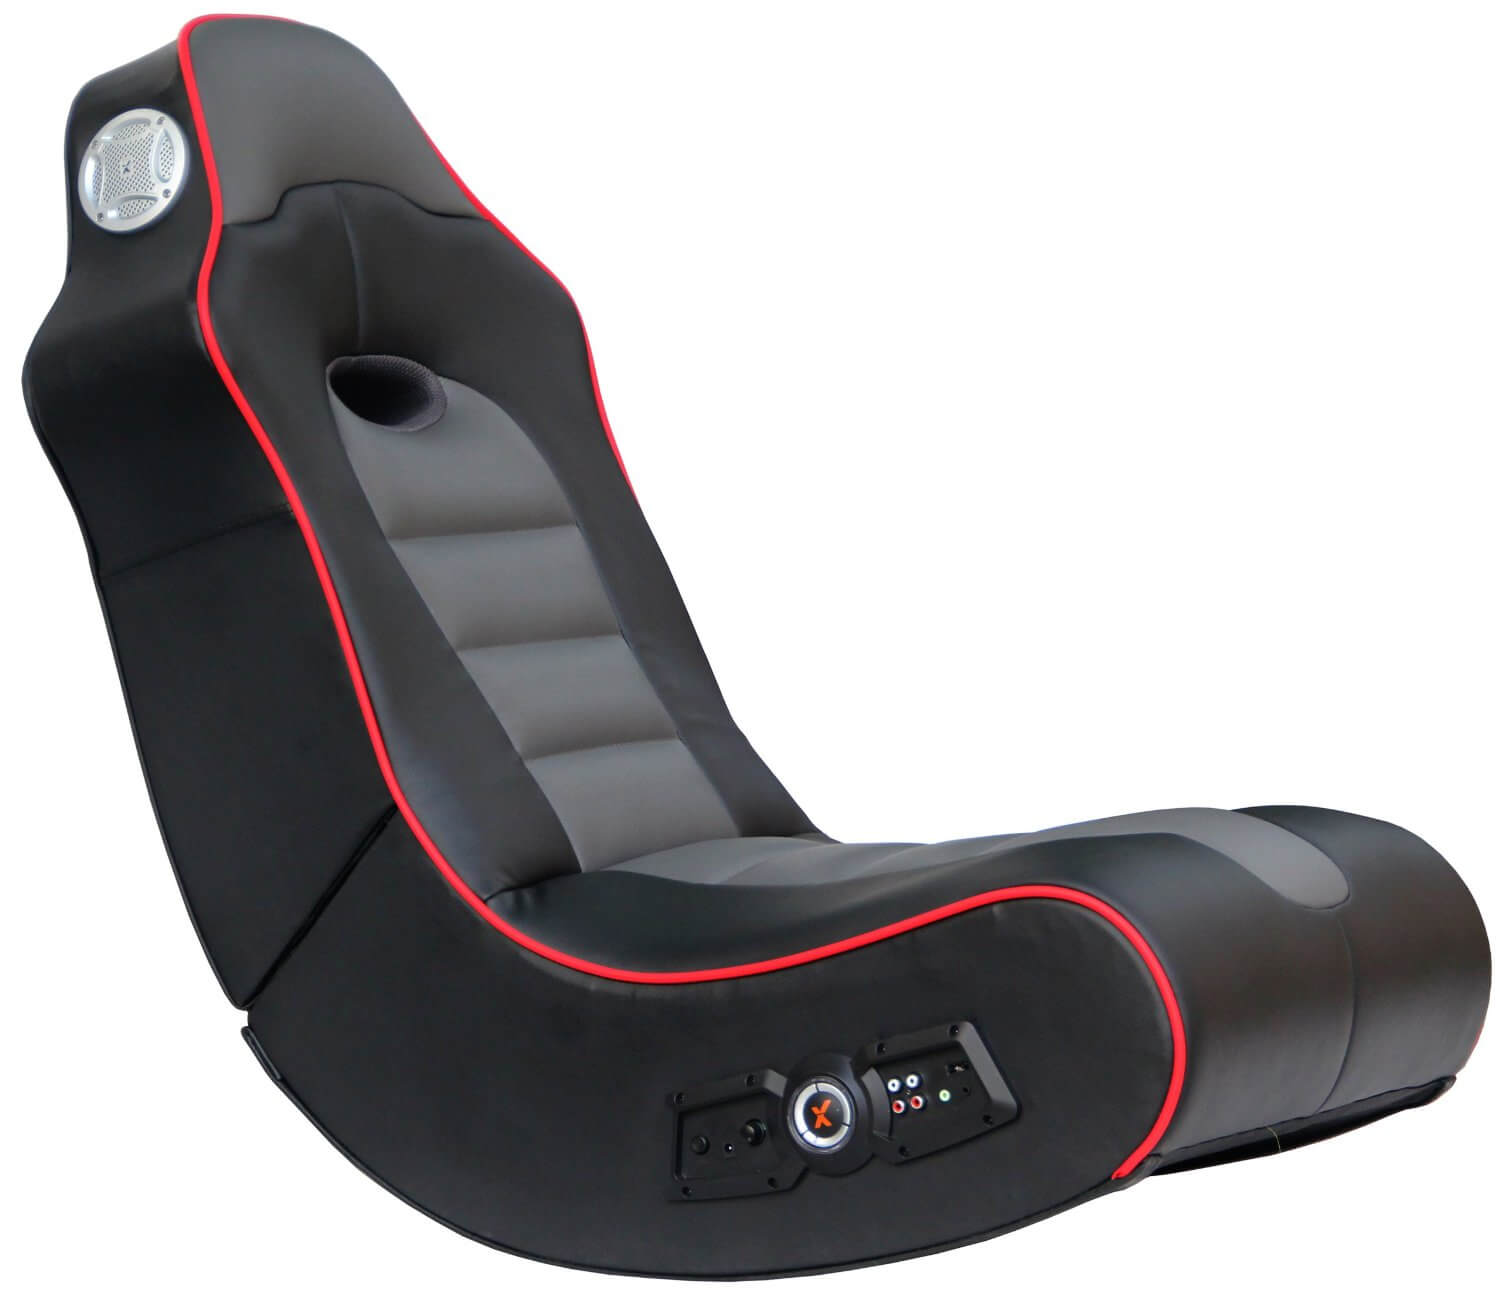 Best Gaming Chair List Amp Guide 25 Chairs With Reviews